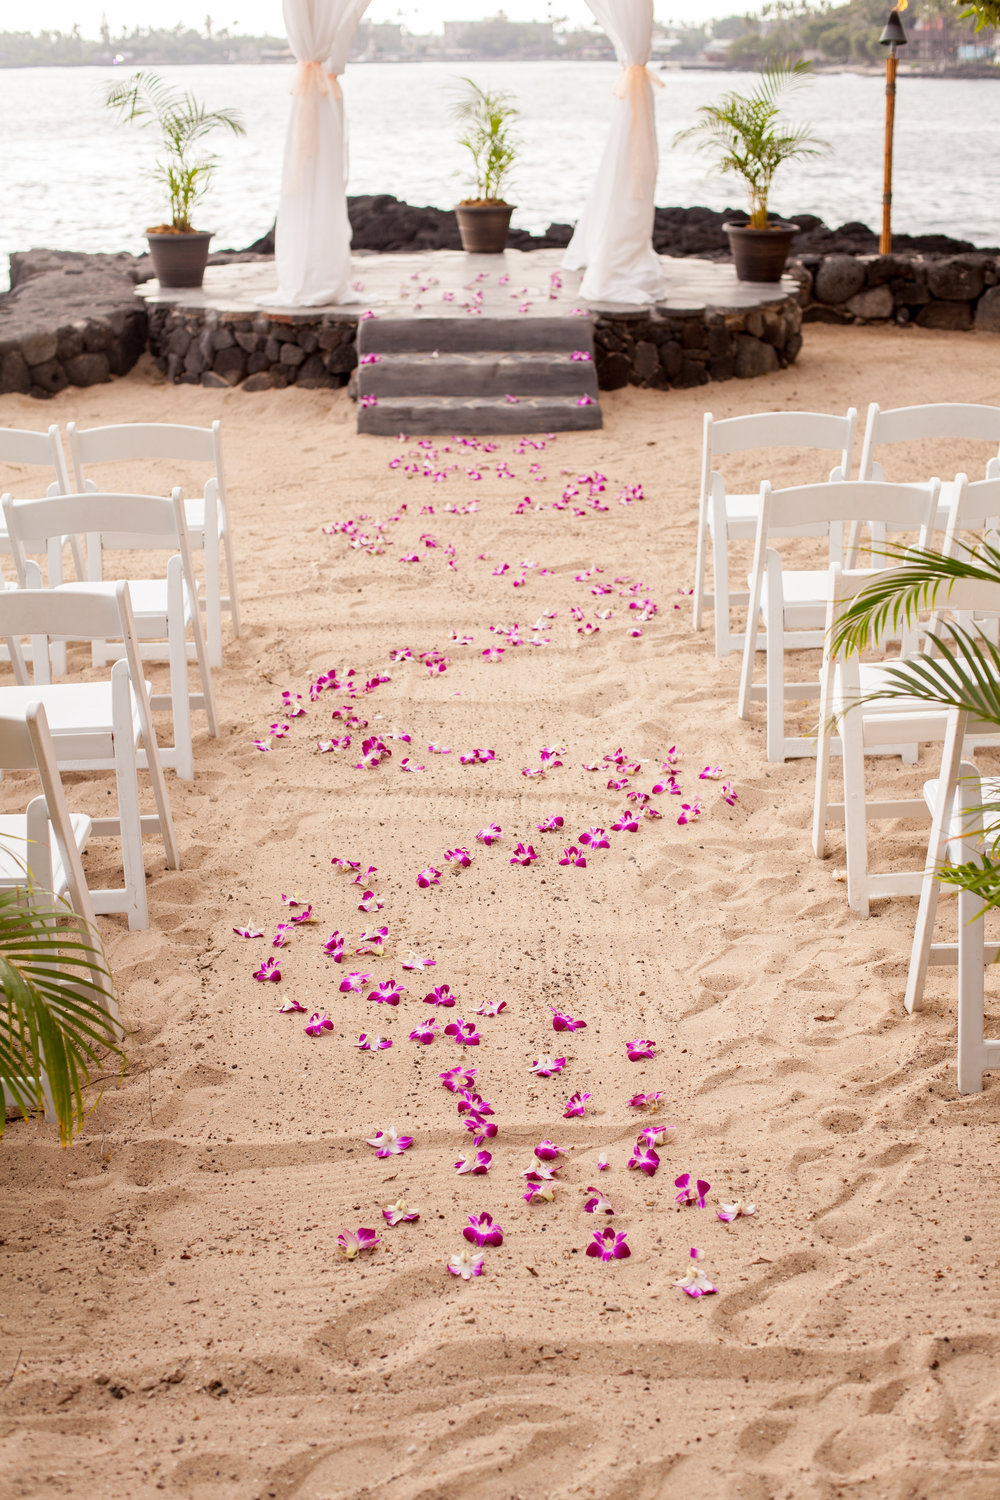 big island hawaii royal kona resort beach wedding © kelilina photography 20170615165825.jpg